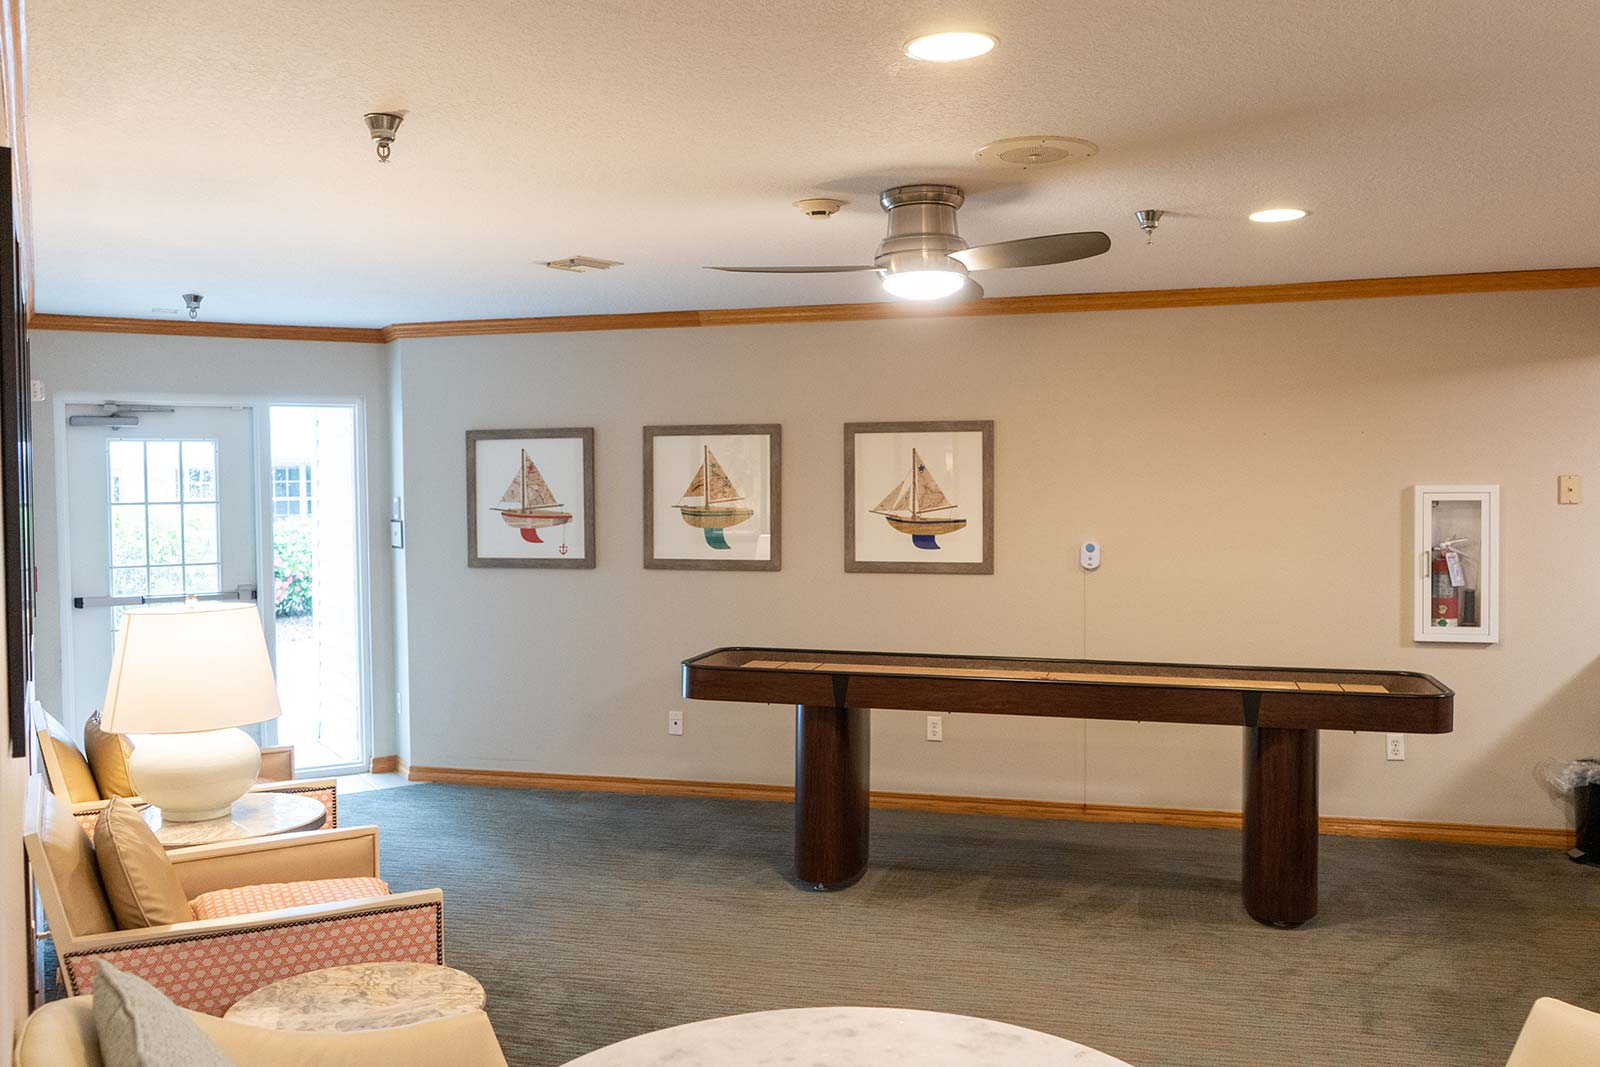 Game room at Heron House assisted living and memory care community in Sarasota, FL